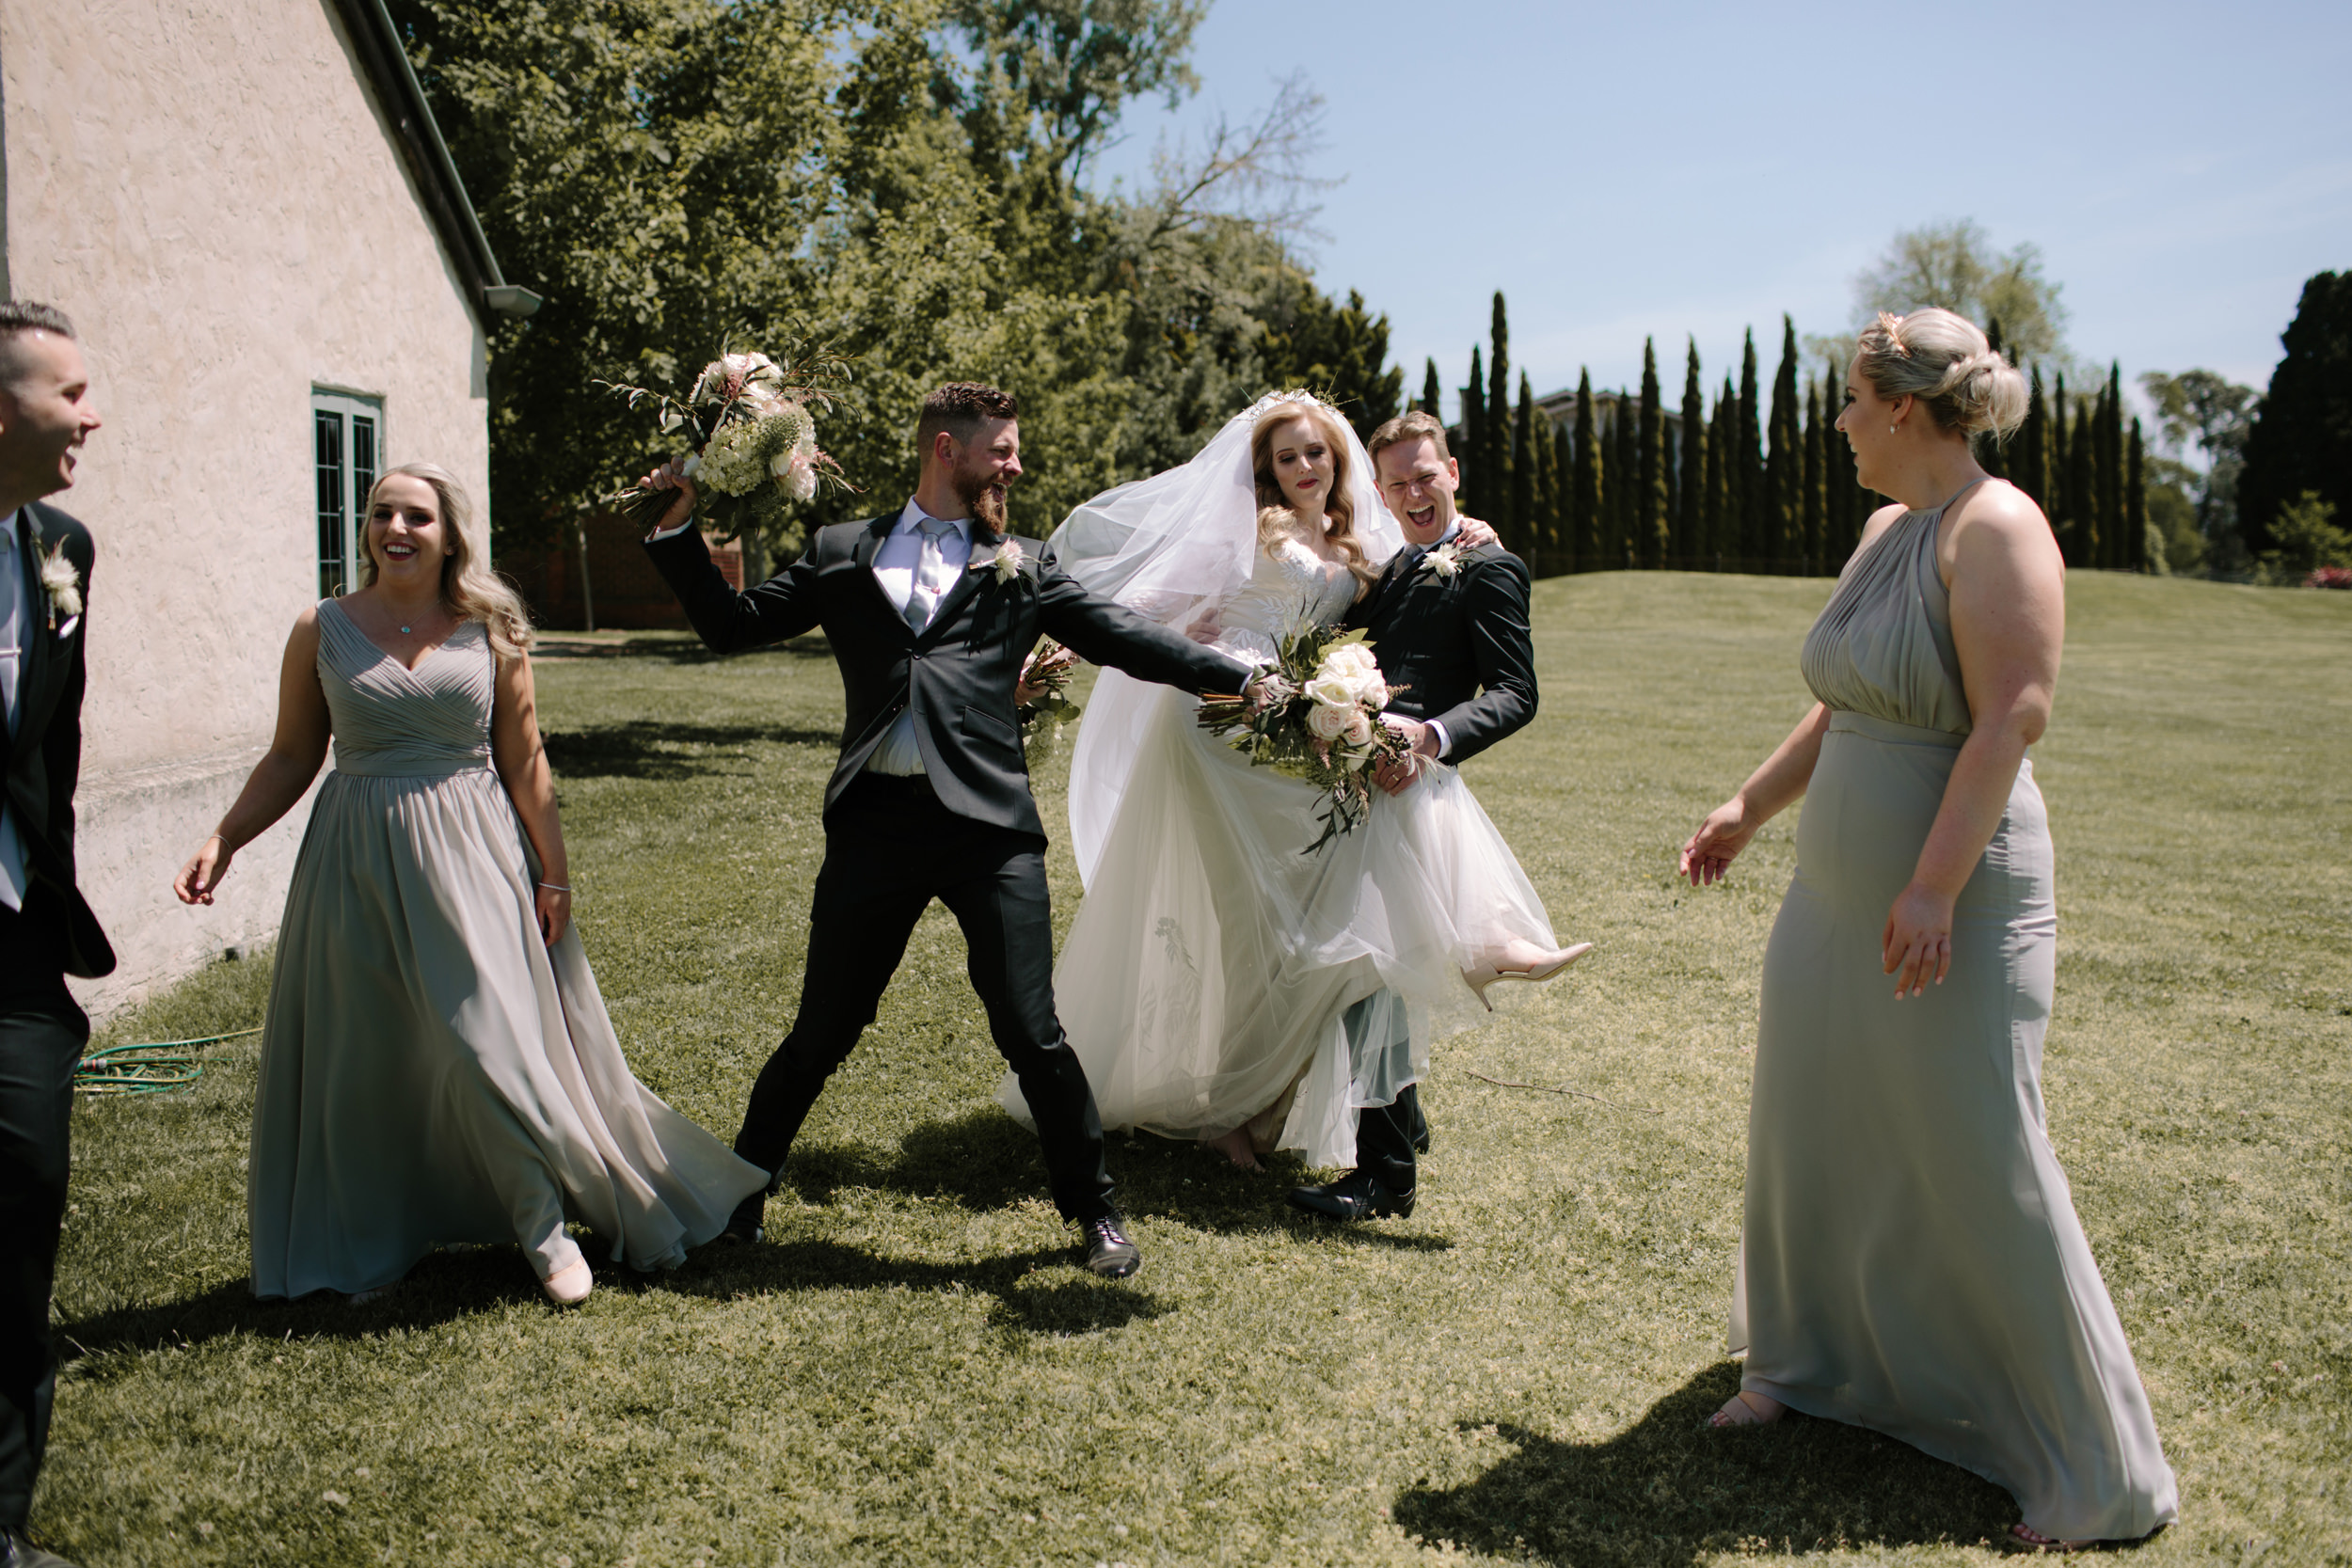 I-Got-You-Babe-&.Co.-Stones-of-the-Yarra-Valley-Wedding-Beverly-Ross0116.JPG